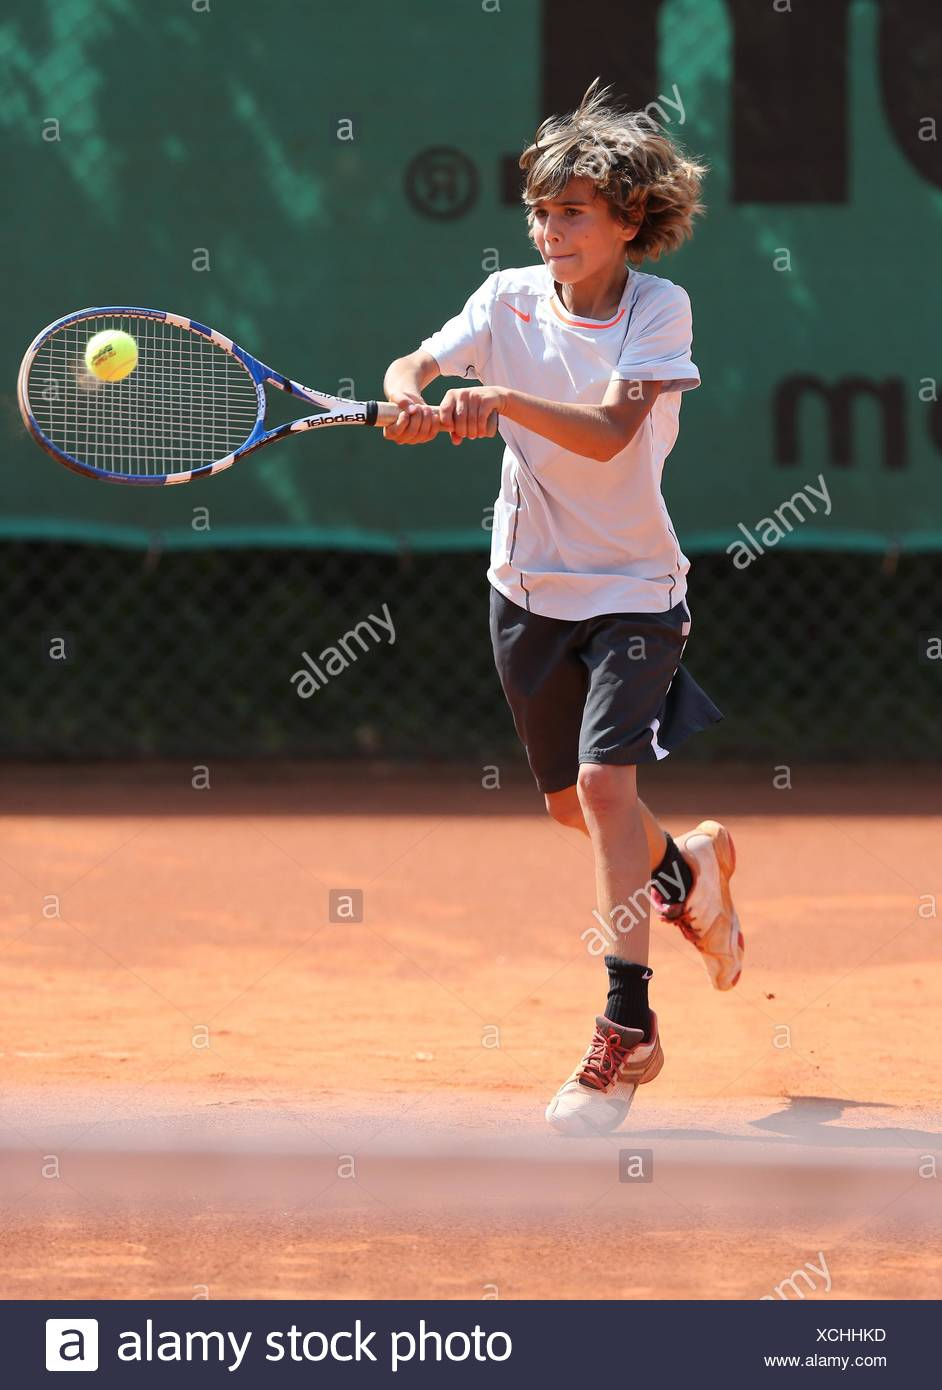 Boy, 10, playing tennis, hitting with a two-handed backhand, Munich, Upper Bavaria, Bavaria, Germany - Stock Image